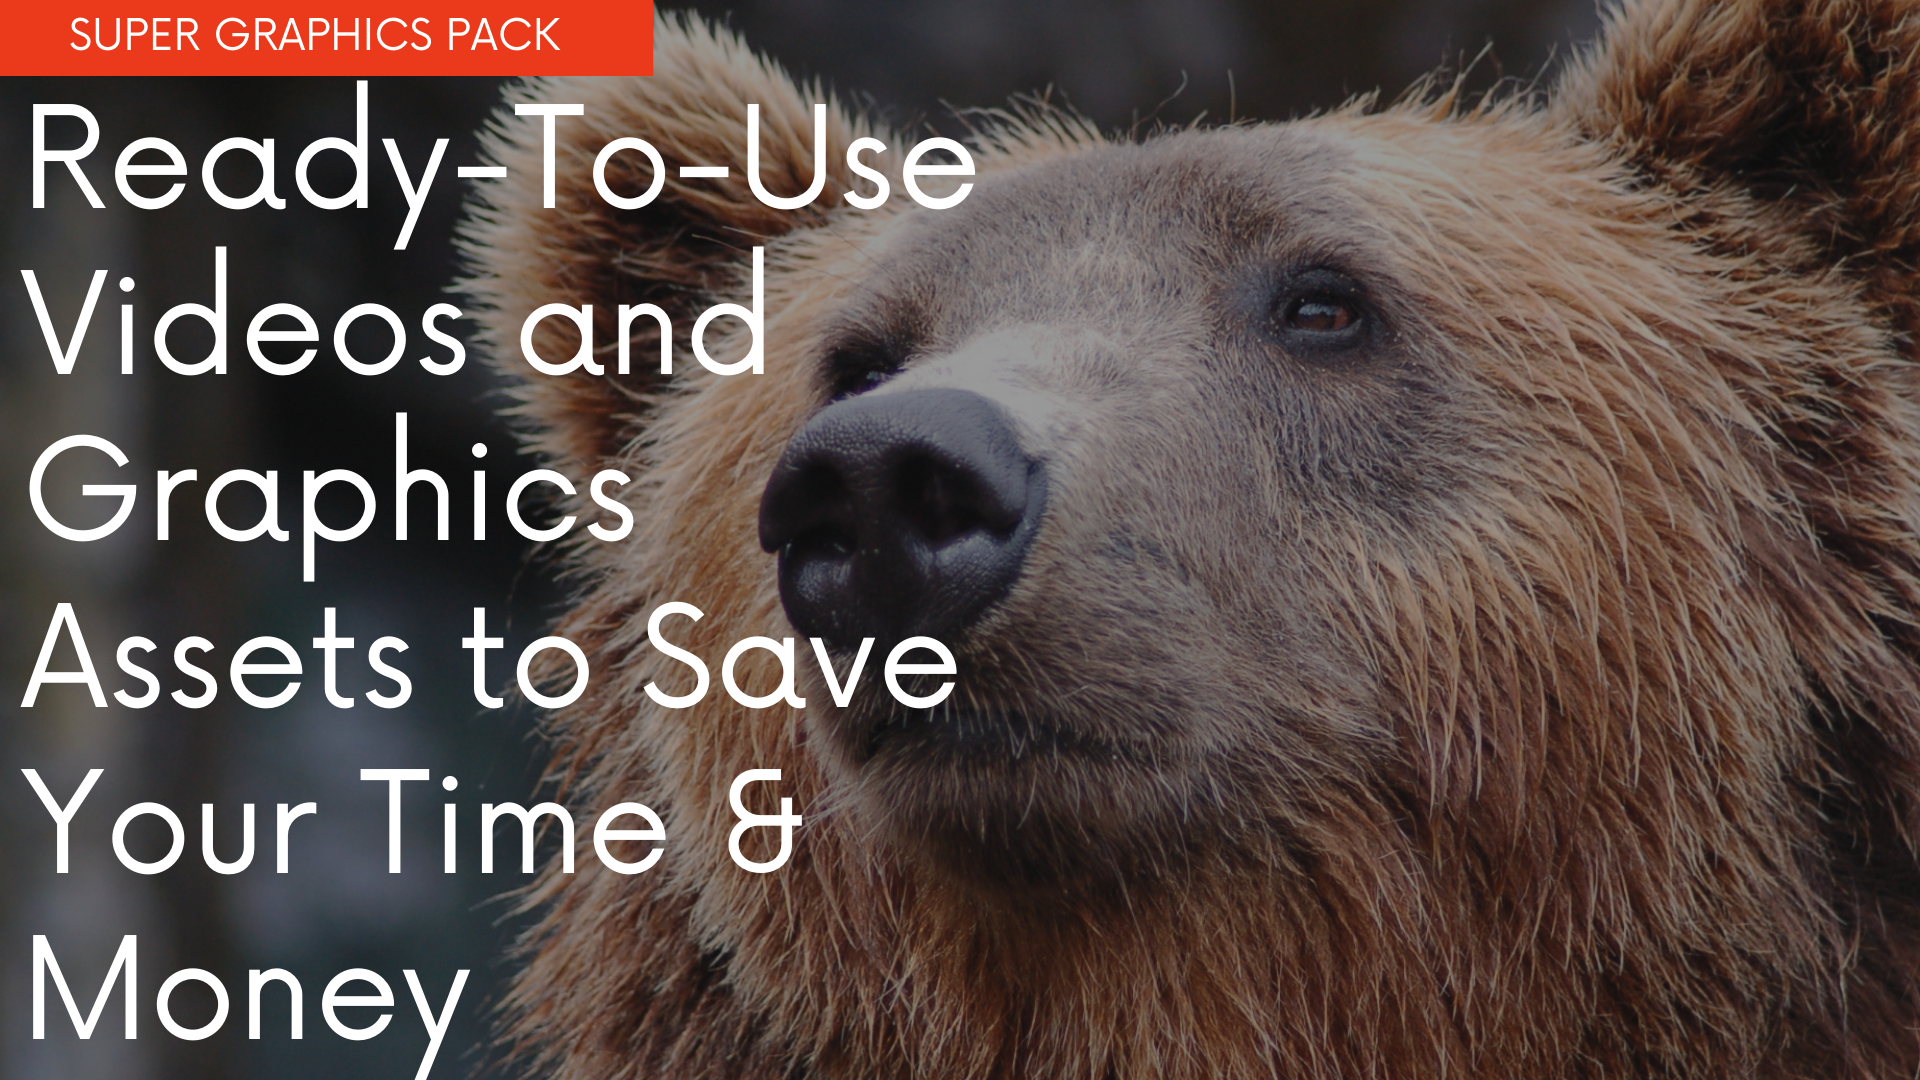 Ready-To-Use Videos and Graphics Assets to Save Your Time & Money